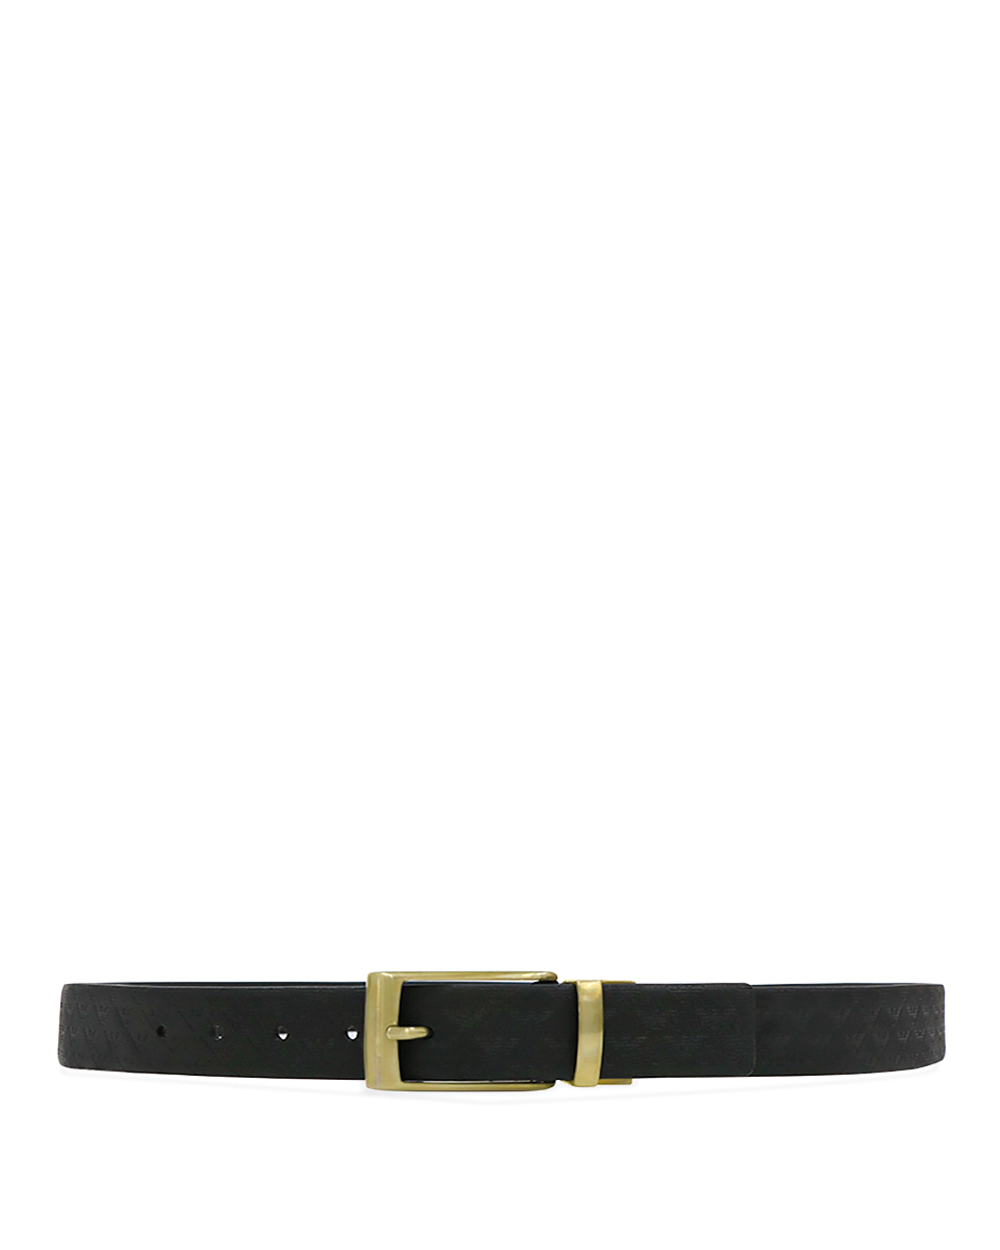 EA LOGO Print Leather Pin Buckle Belt